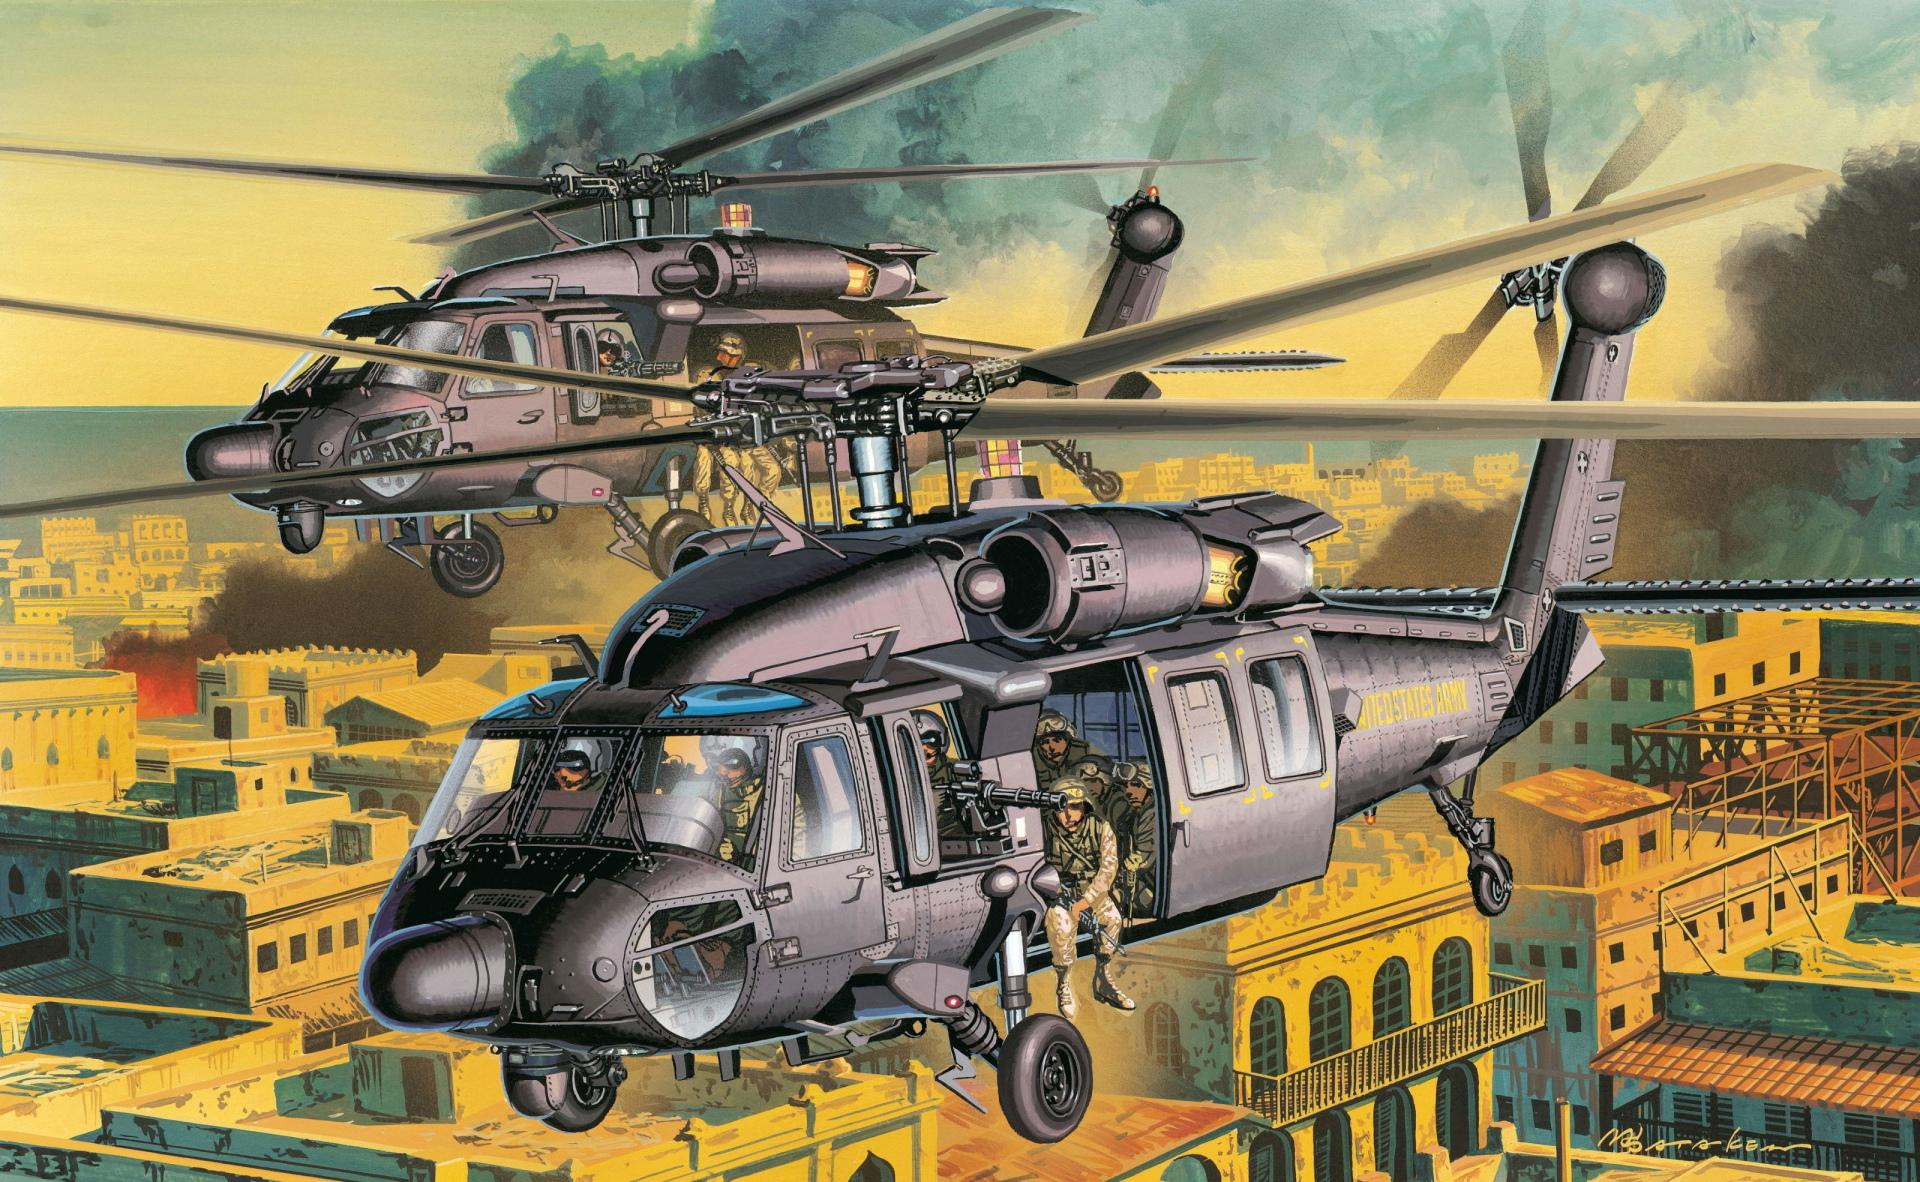 Sikorsky SH-60 Seahawk wallpapers HD quality